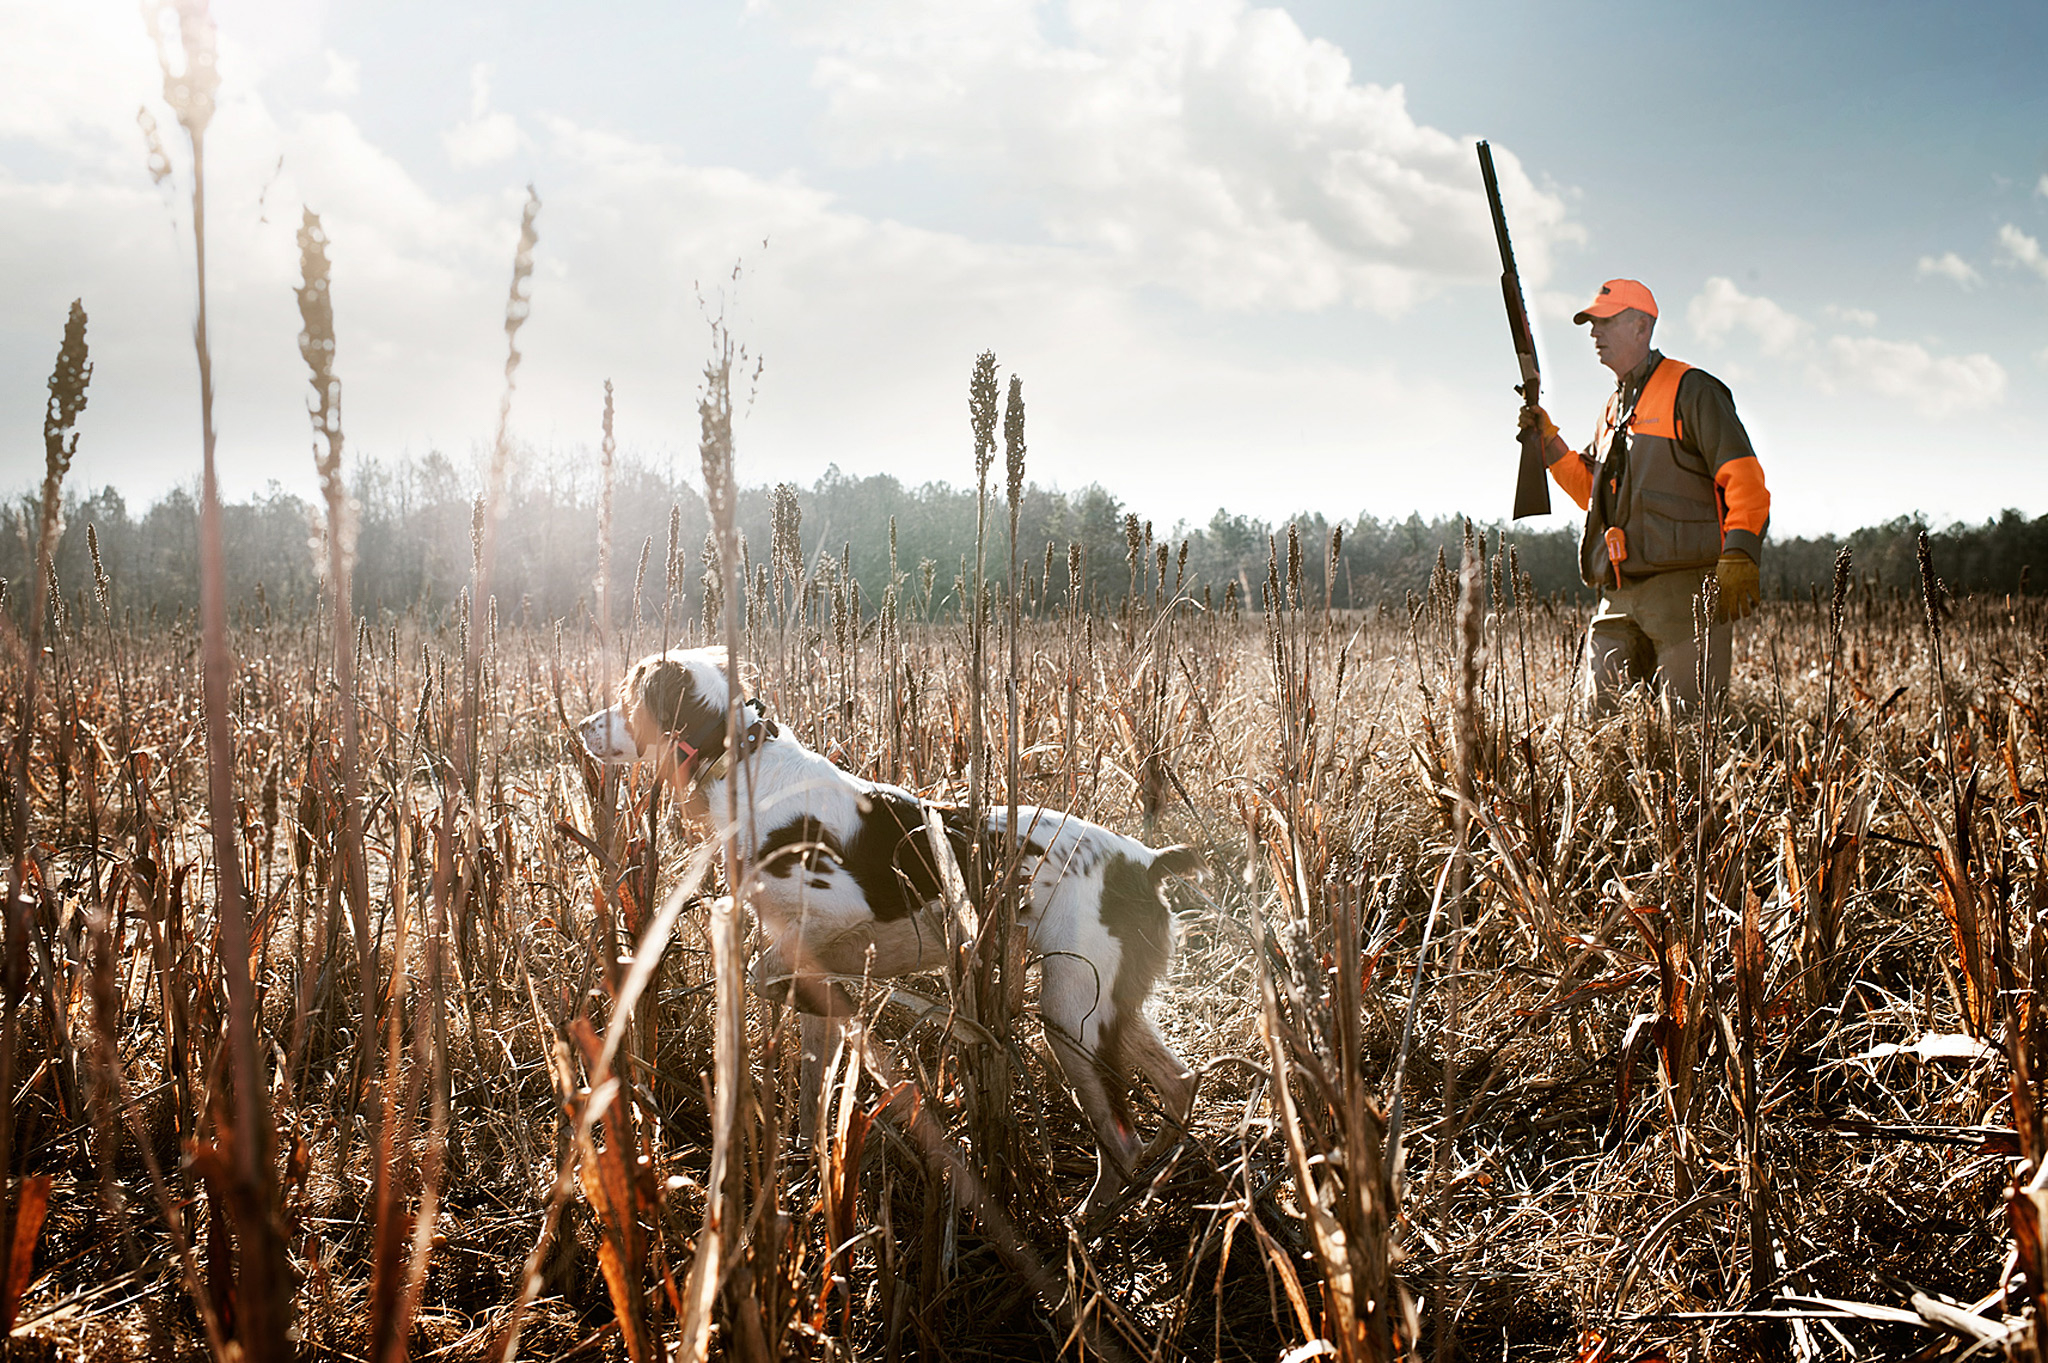 Robb-Scharetg-Hunting-Field-Sports-Photographer-5